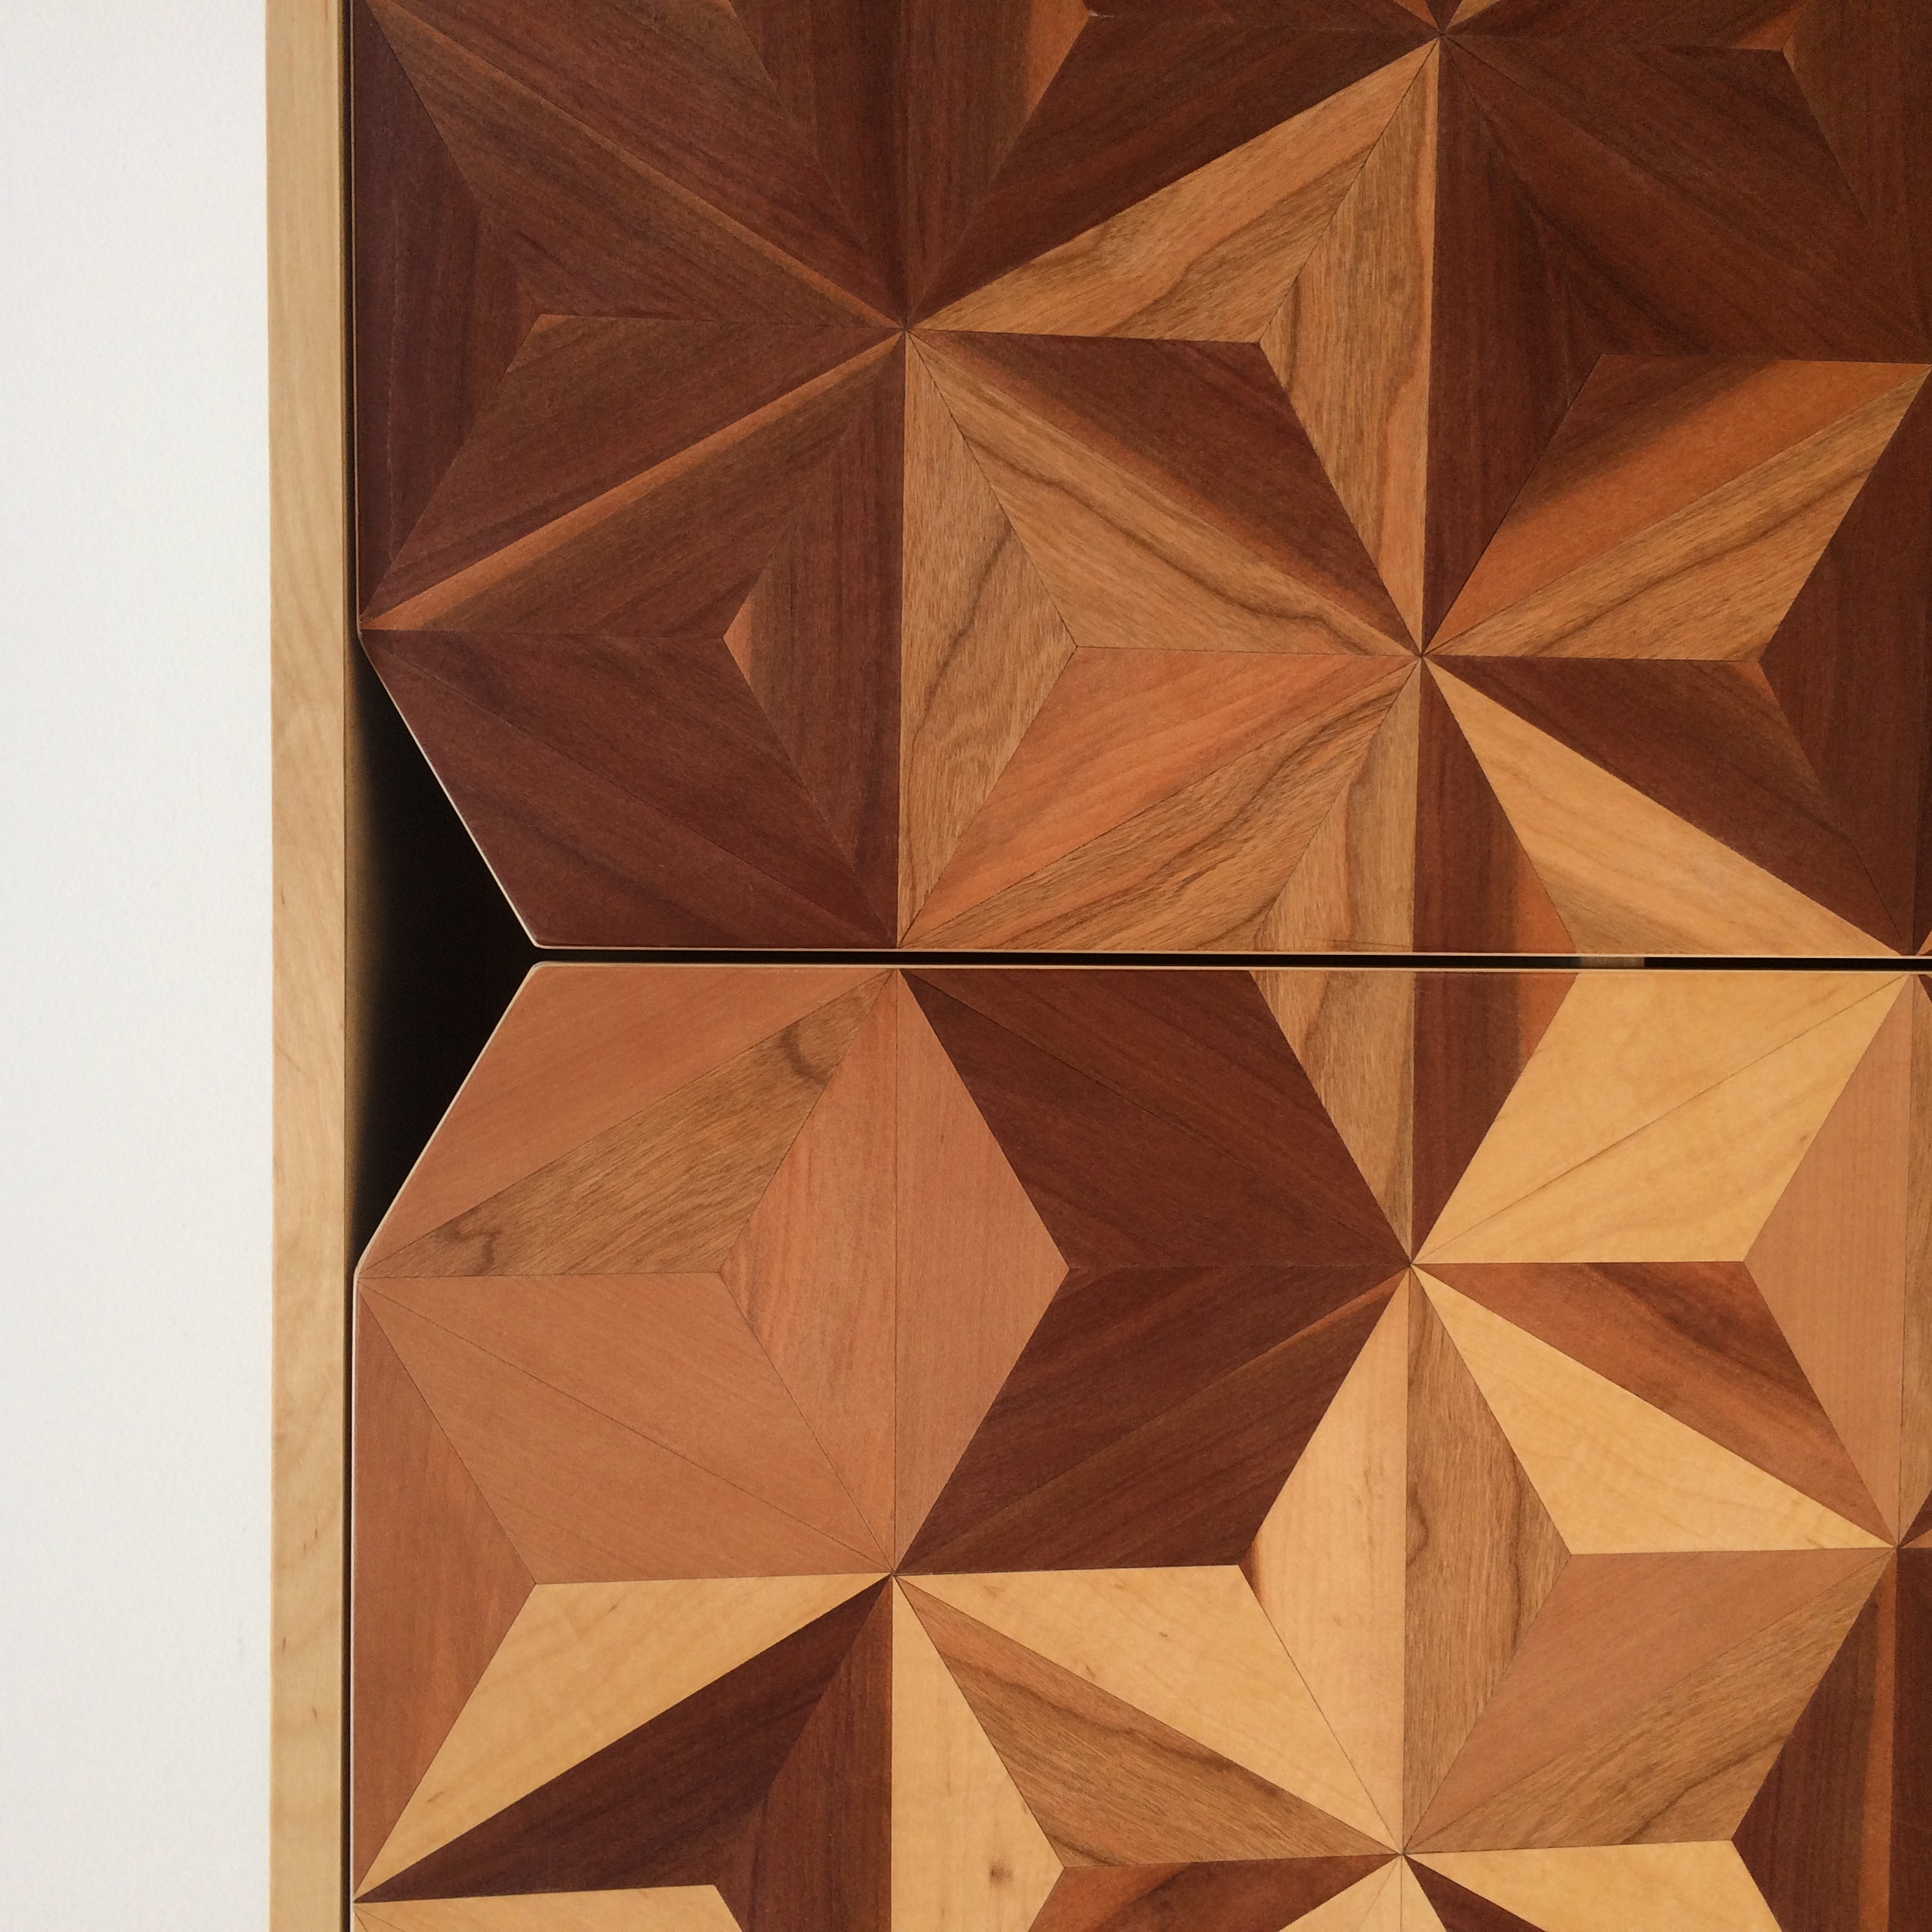 Geometric inlay doors